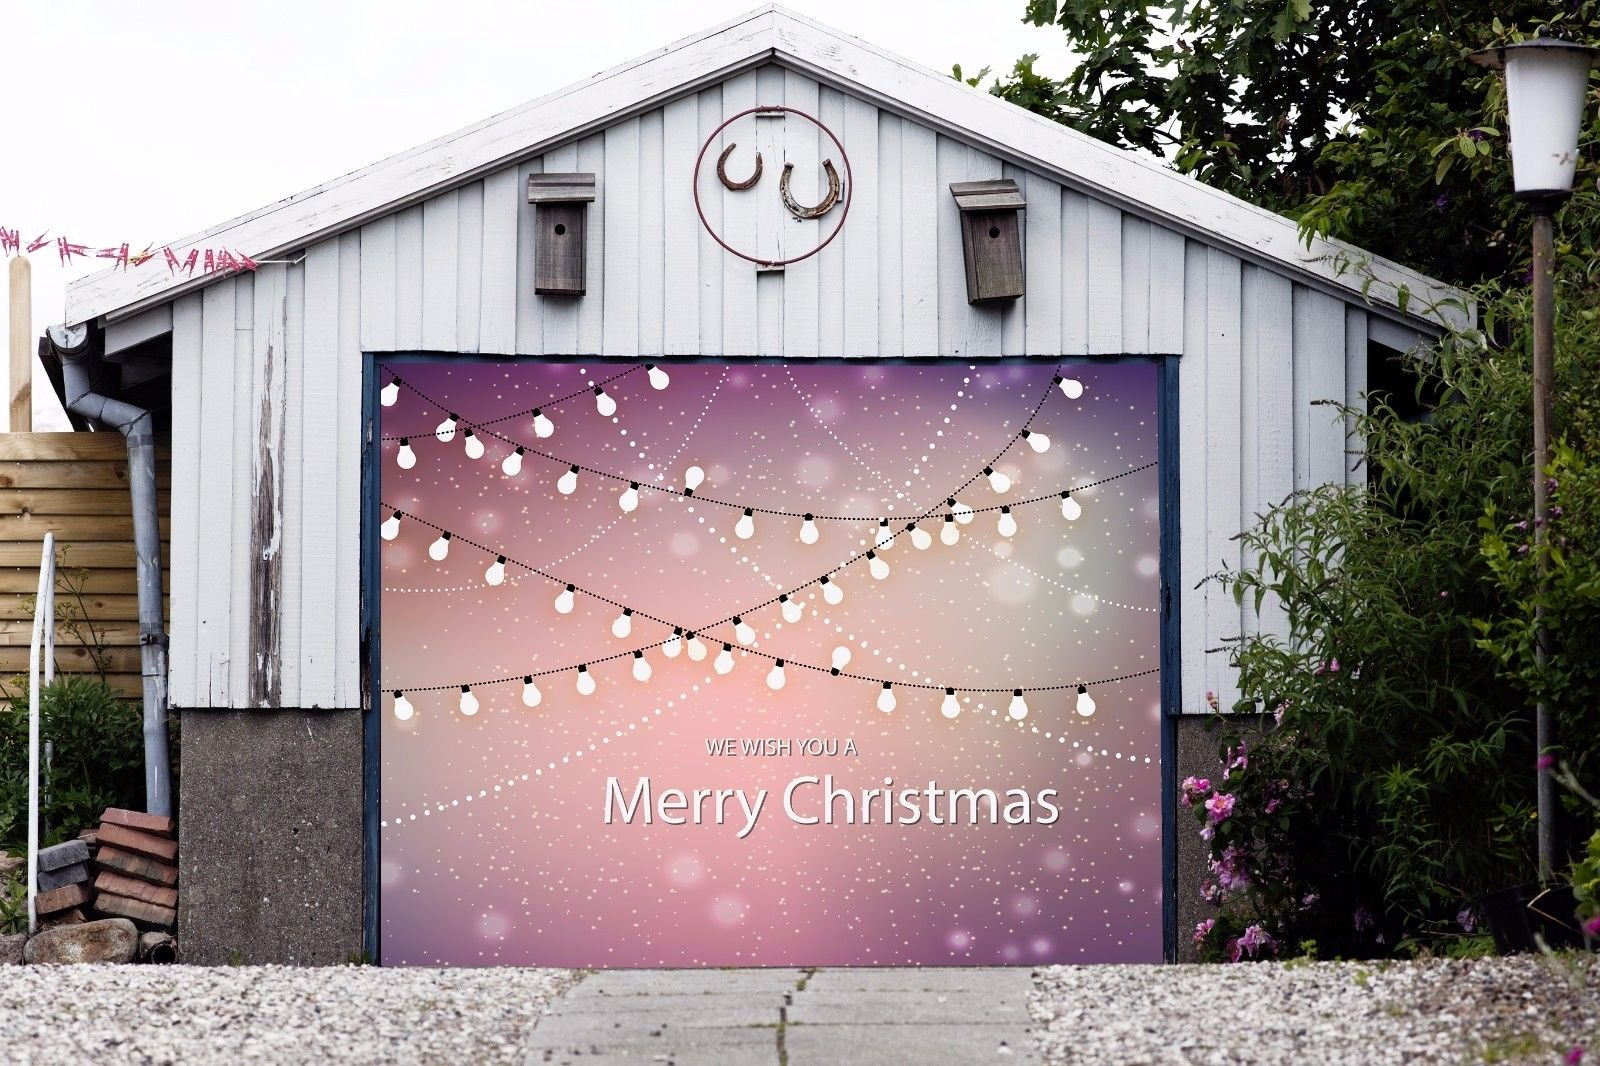 Merry Christmas Billboard Christmas Single Garage Door Covers Full Color 3D Effect Print Decorations of House MURAL Banner Holiday Garage Door Banner Size 83 x 89 inches DAV71